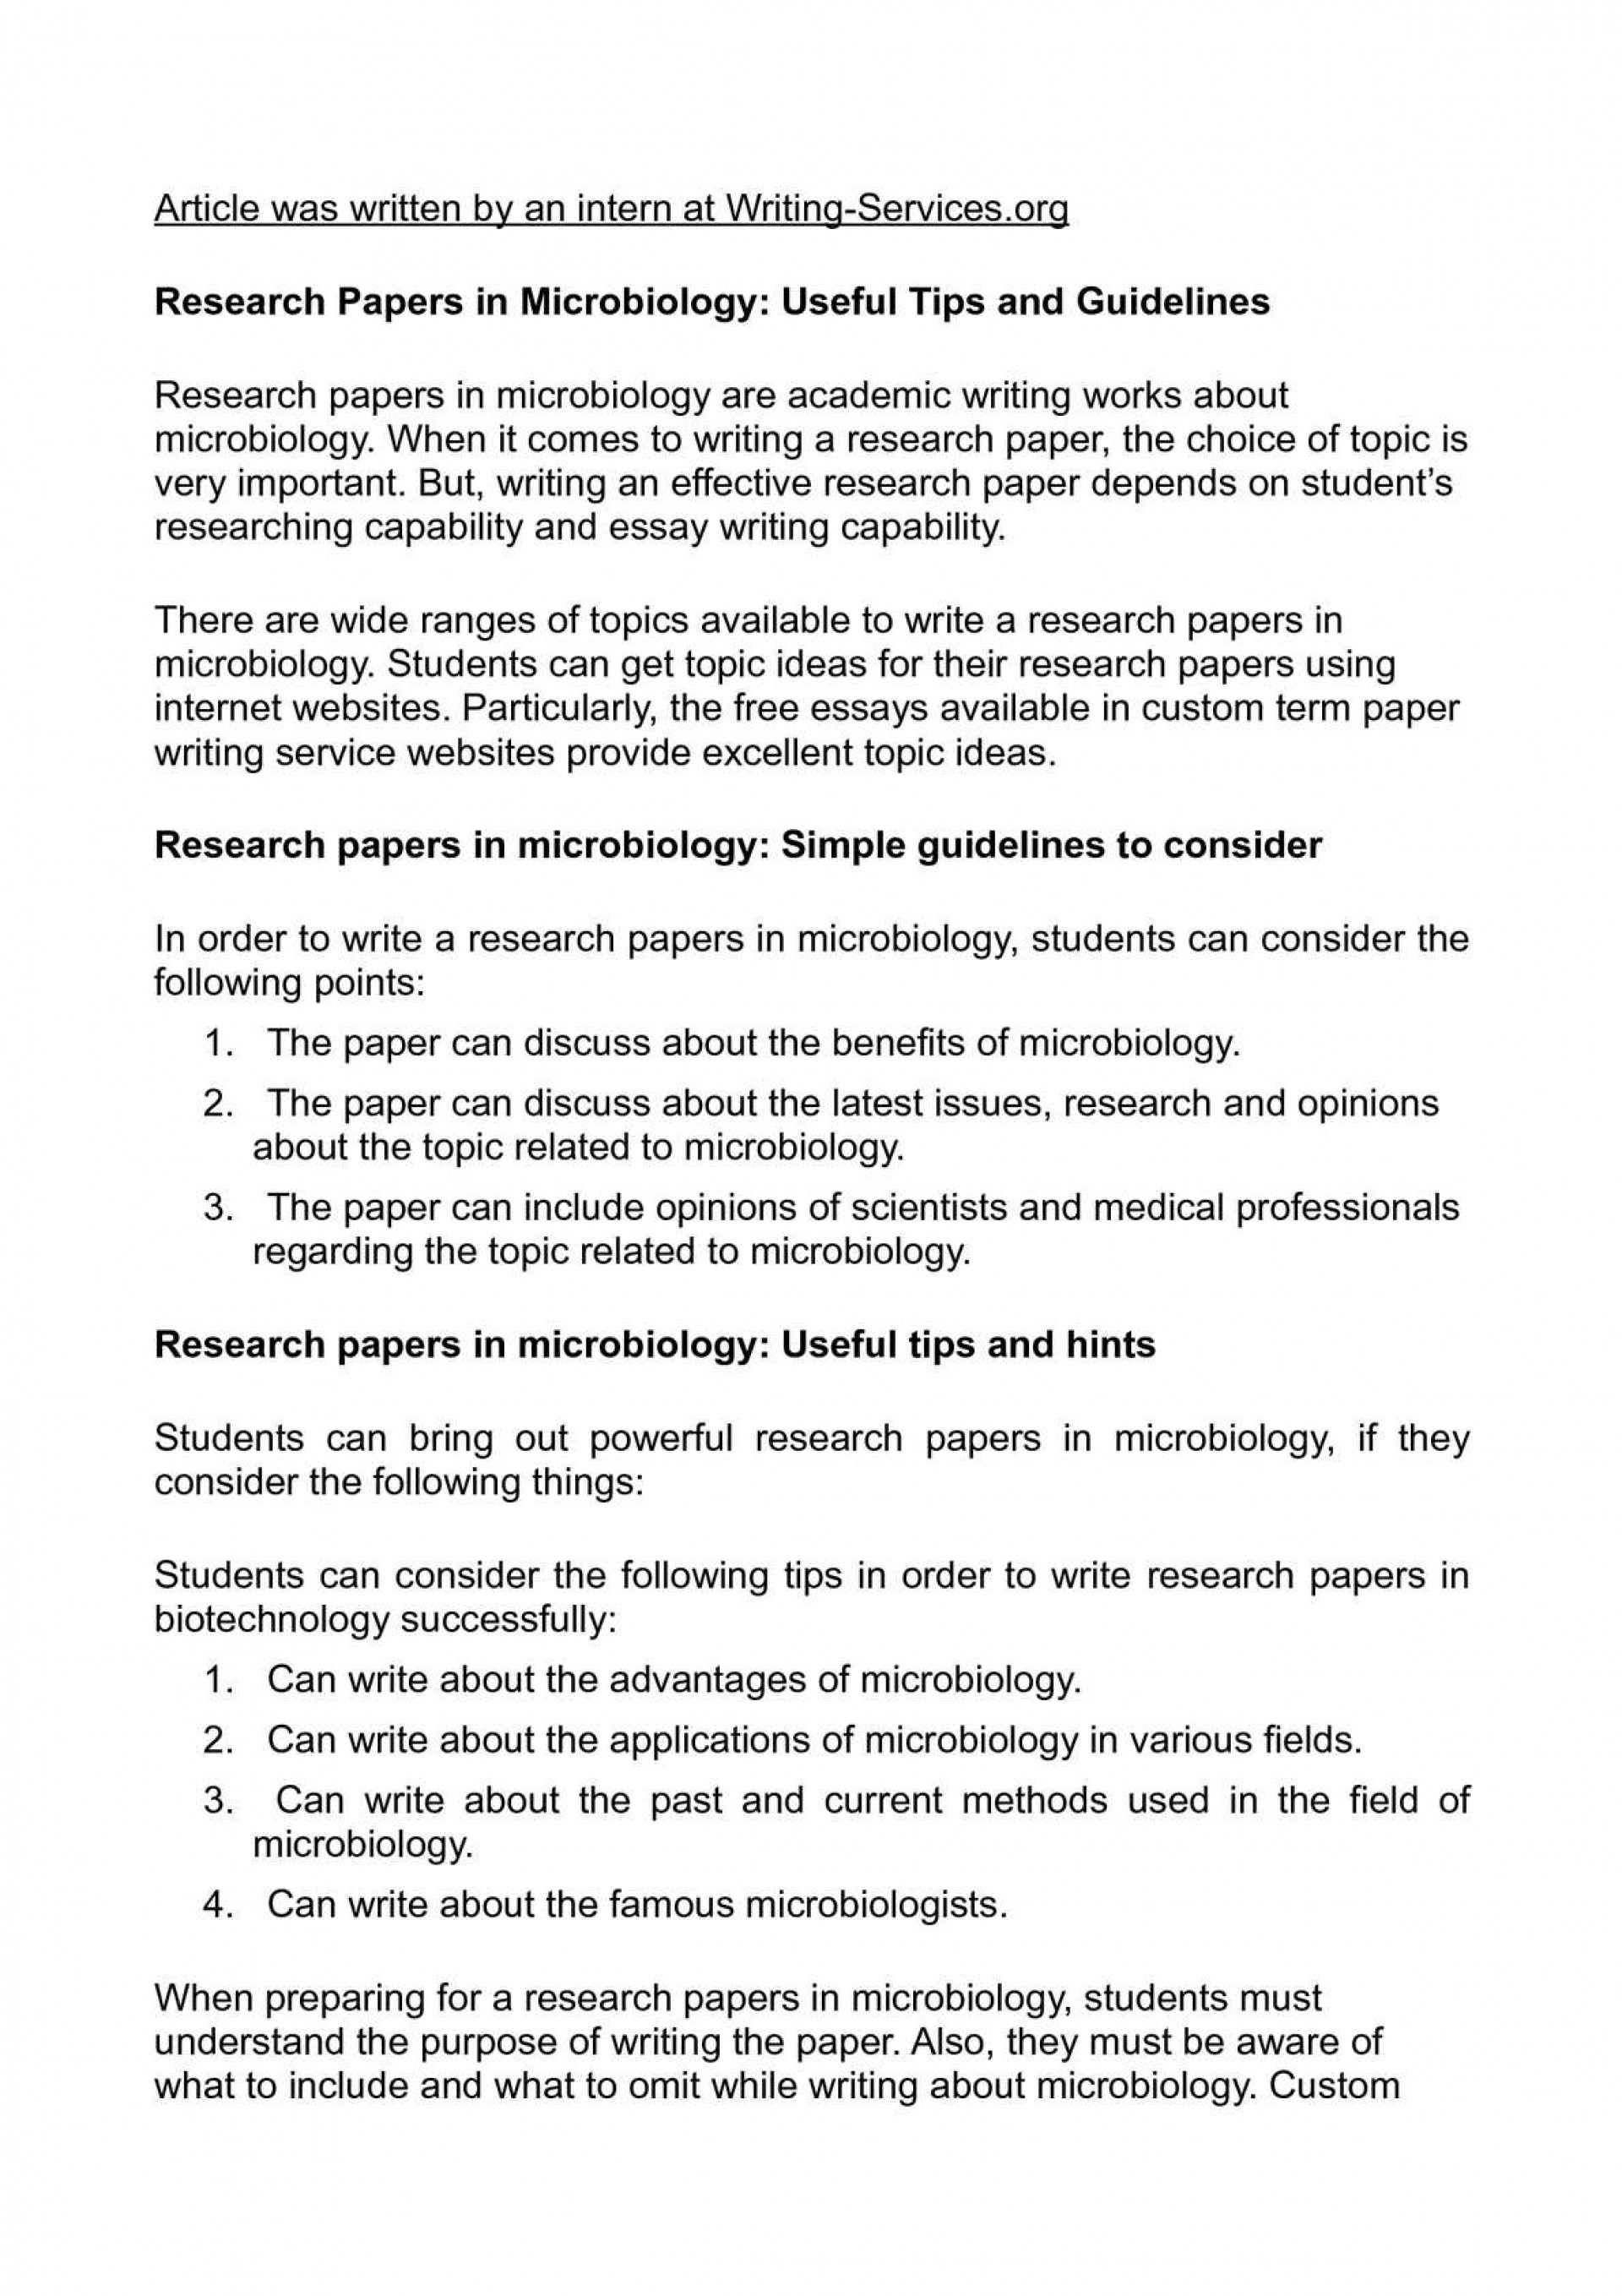 007 Research Paper Tips For Papers Wondrous Good Effective Writing 1920